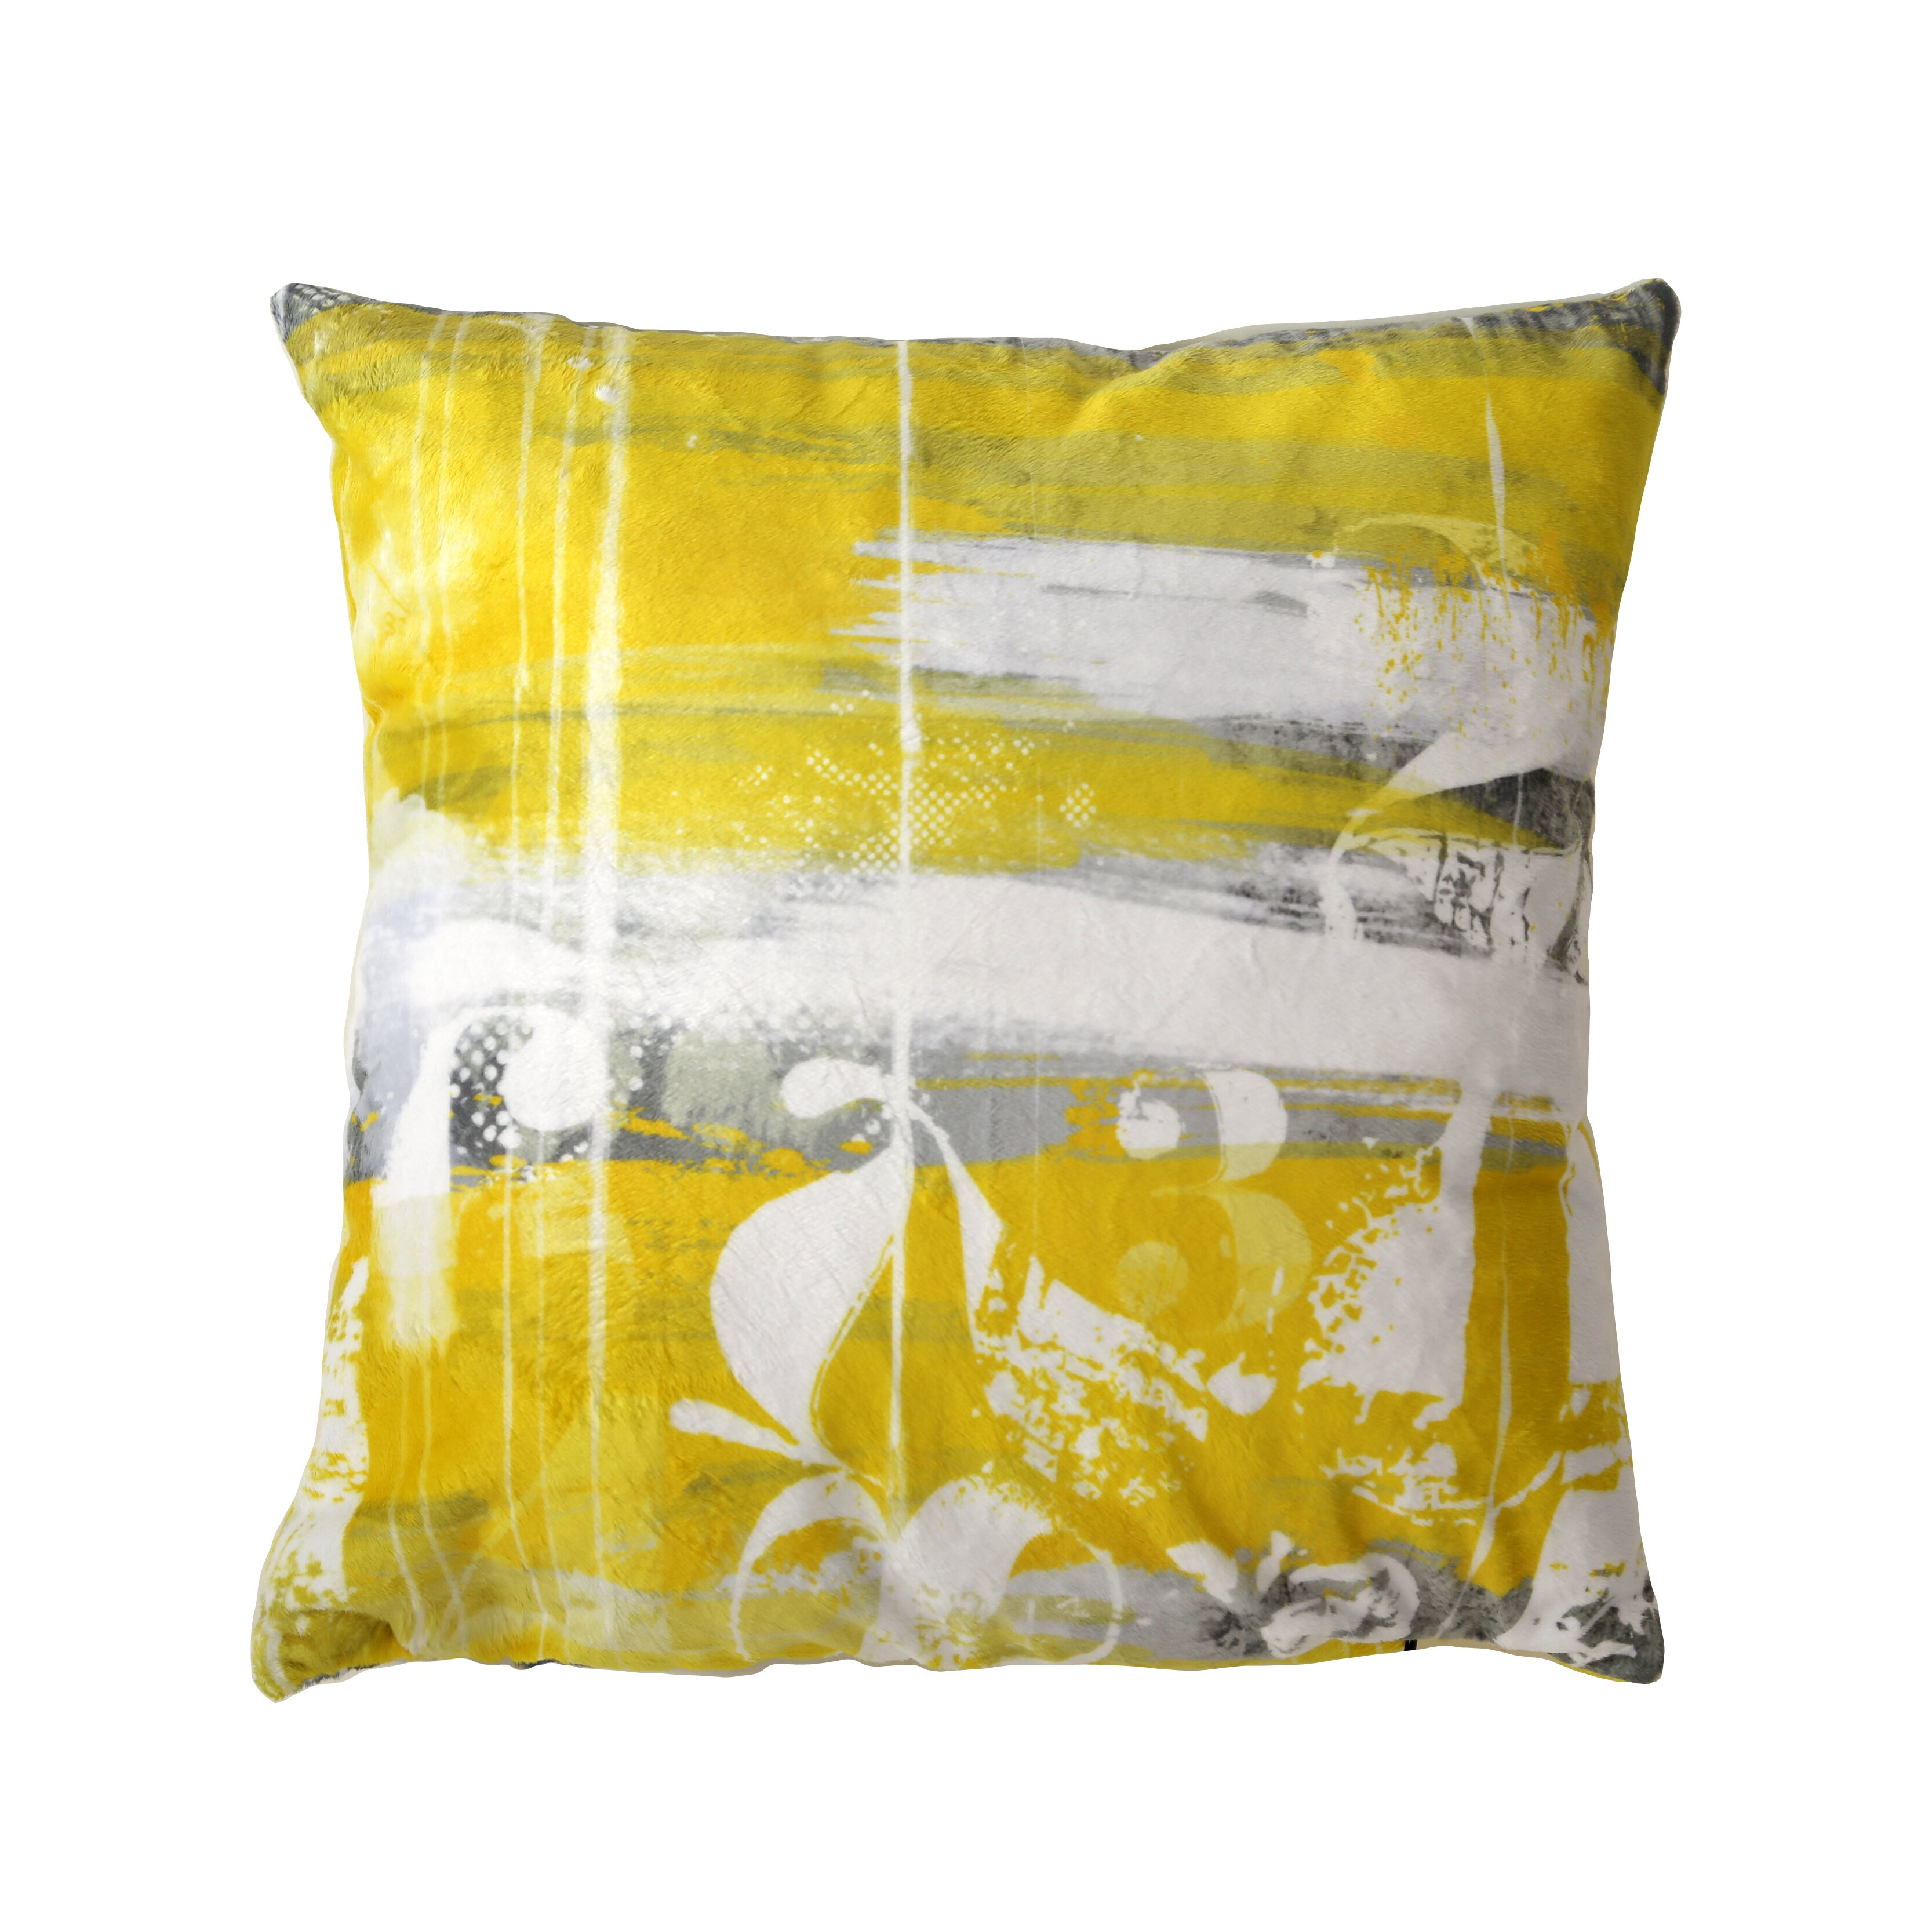 Throw Pillows With Numbers On Them : Maxwell Dickson Number Stacks Throw Pillow & Reviews Wayfair